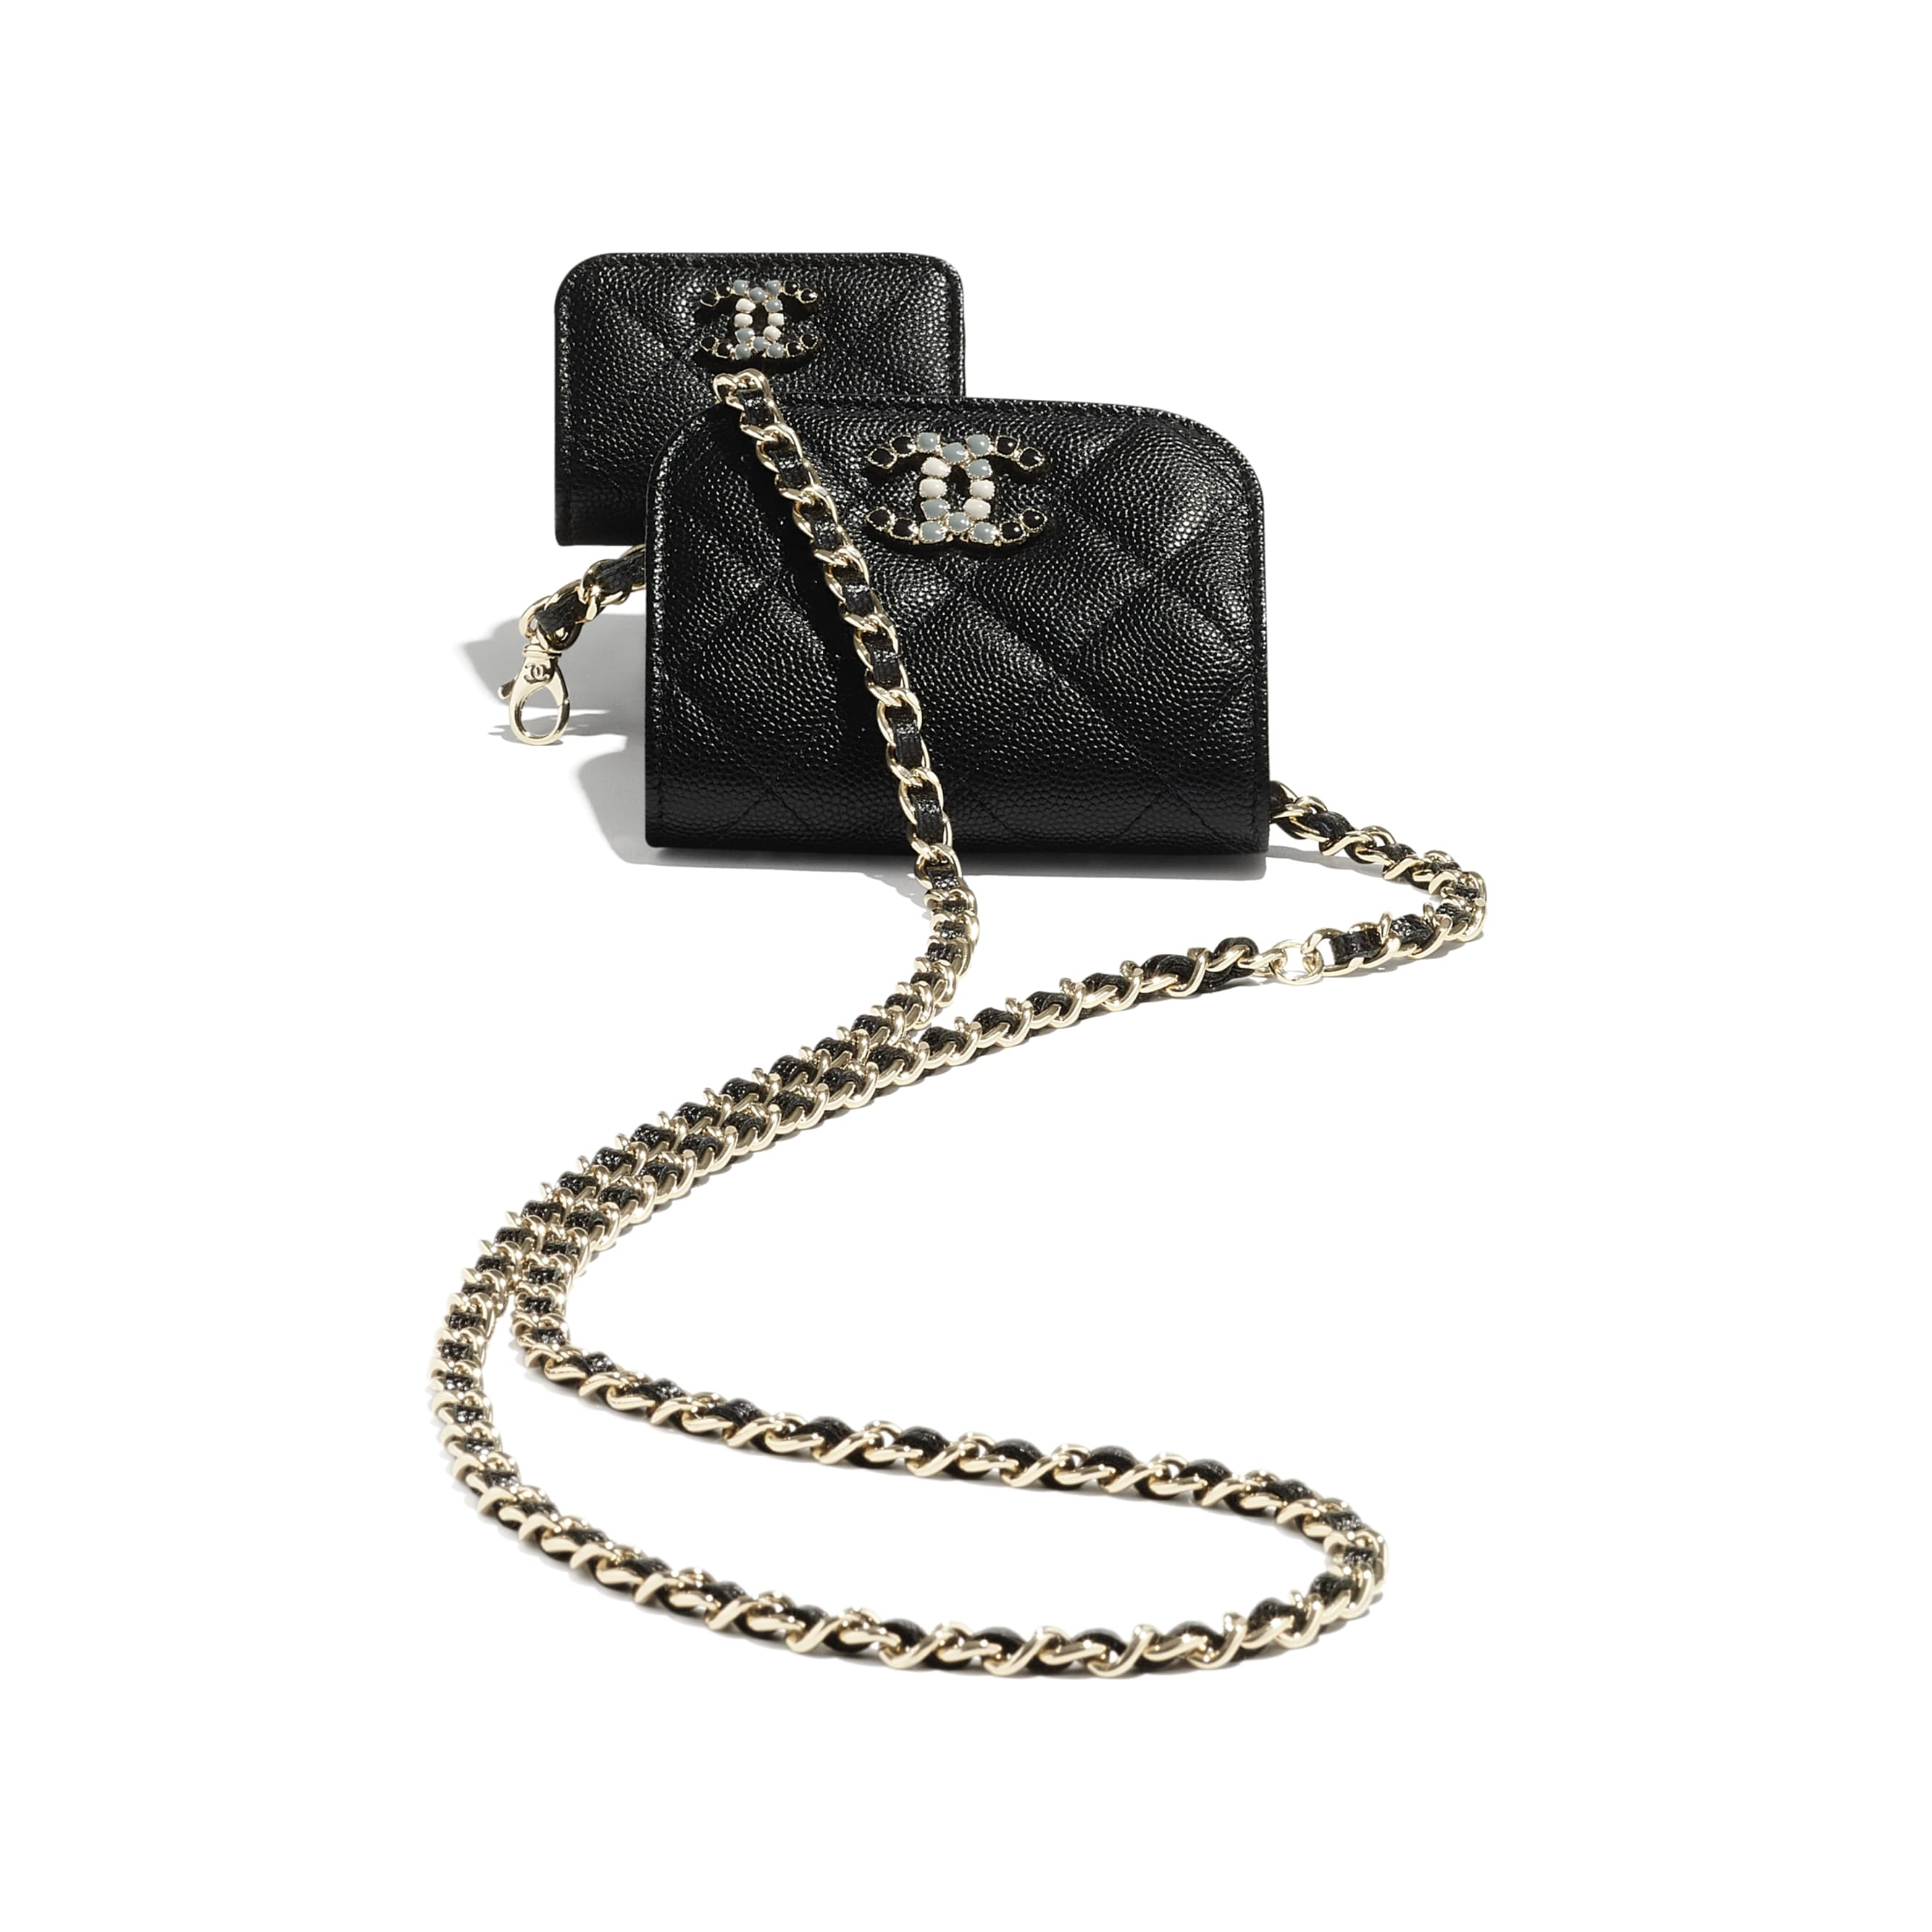 Phone & Airpods Case with Chain - Black - Grained Calfskin & Laquered Gold-Tone Metal - CHANEL - Other view - see standard sized version